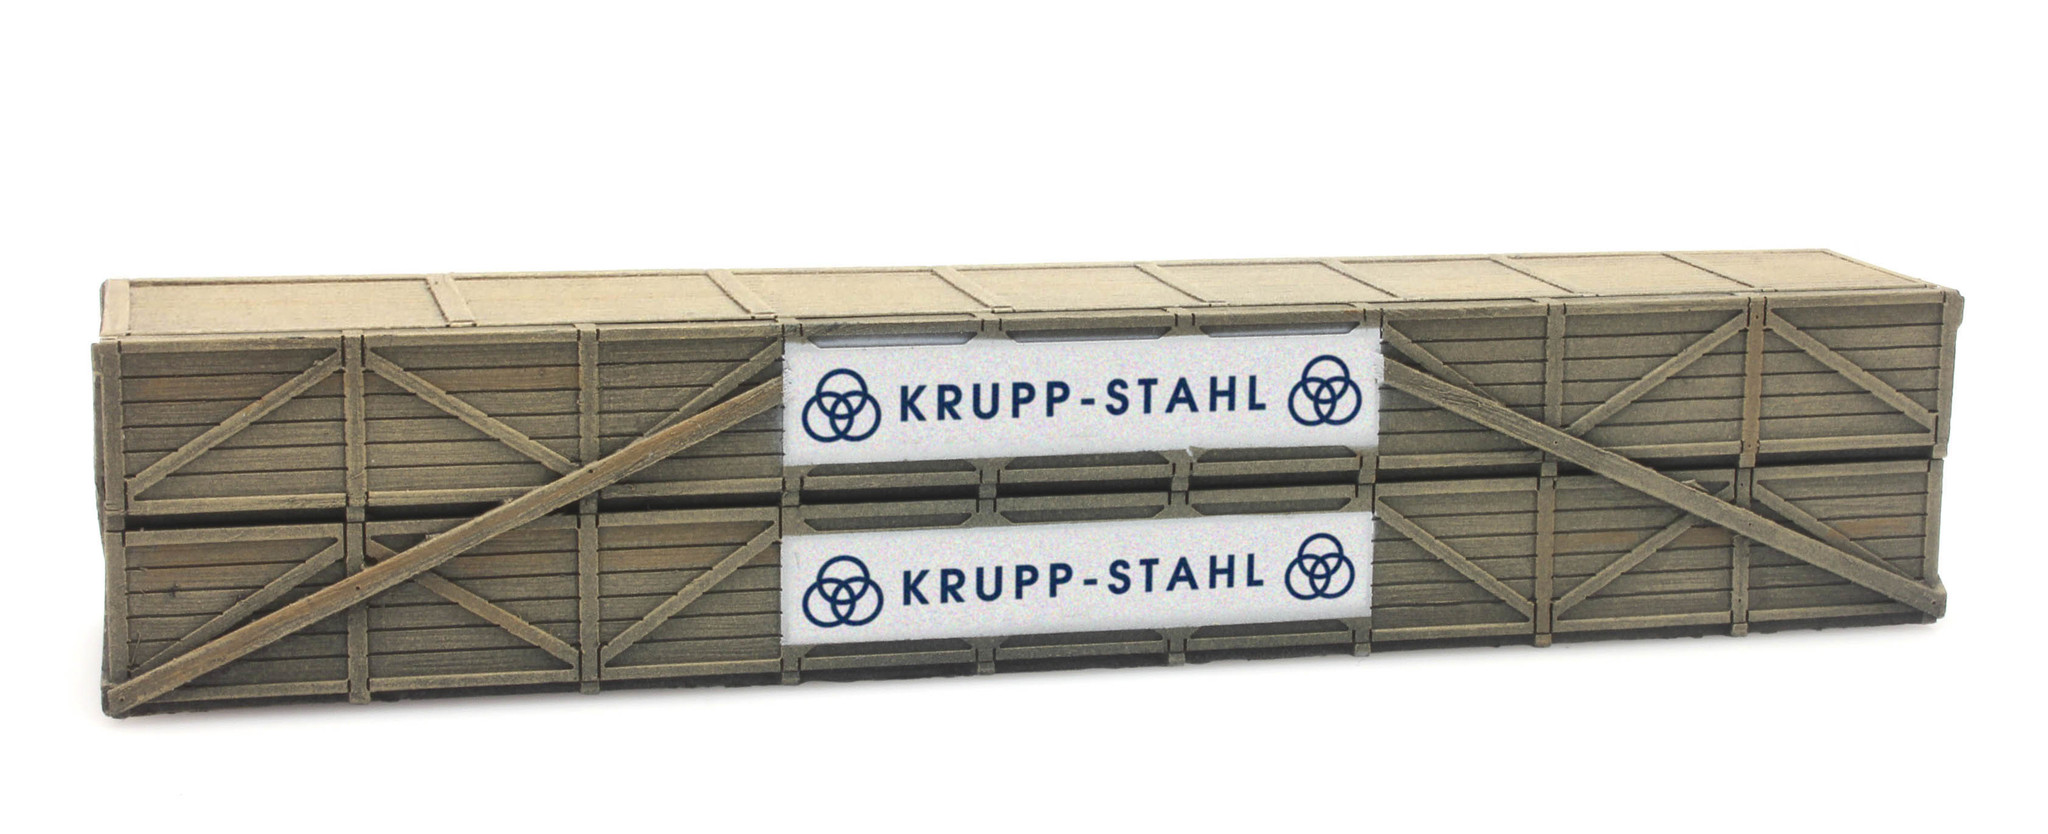 Cargo: Shipping crate: Krupp-Stahl